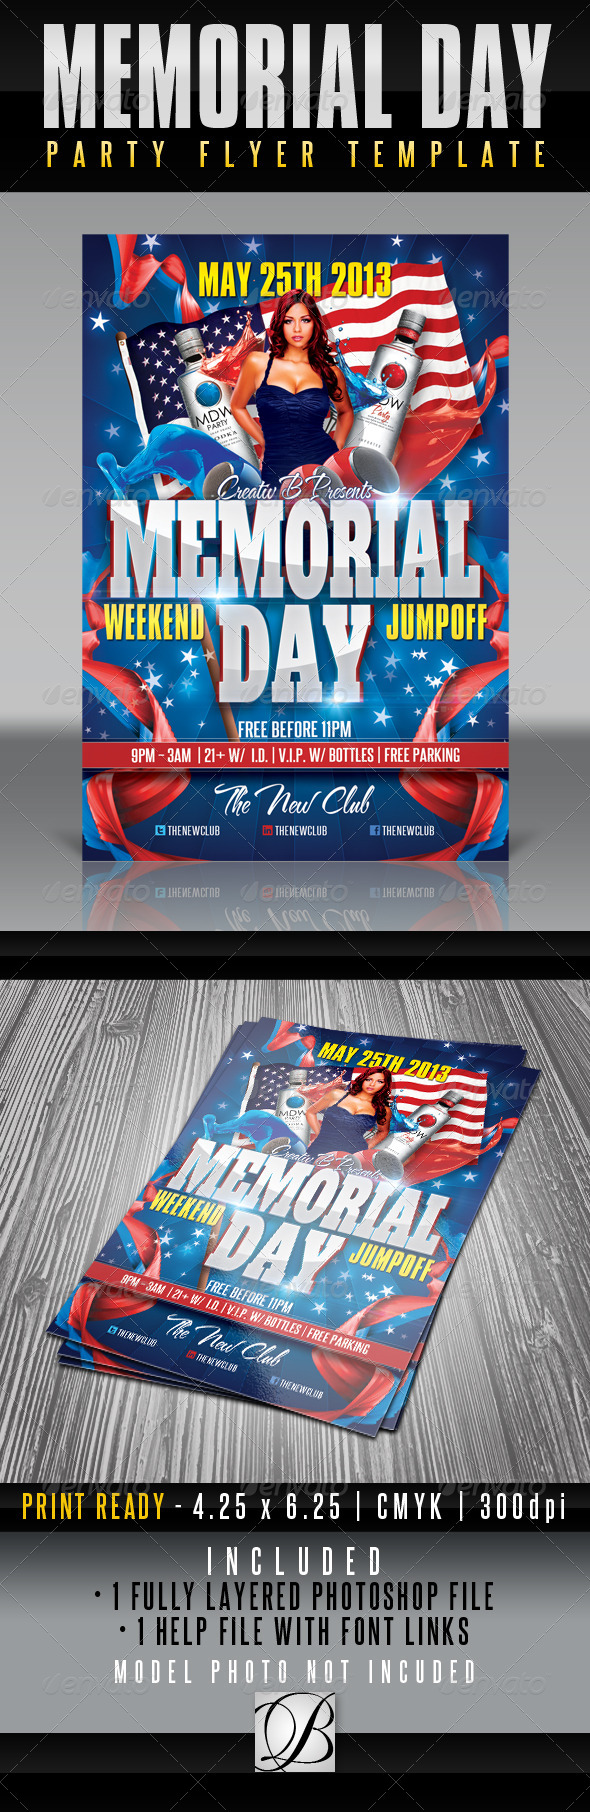 GraphicRiver Memorial Day Party Flyer Template 4659460